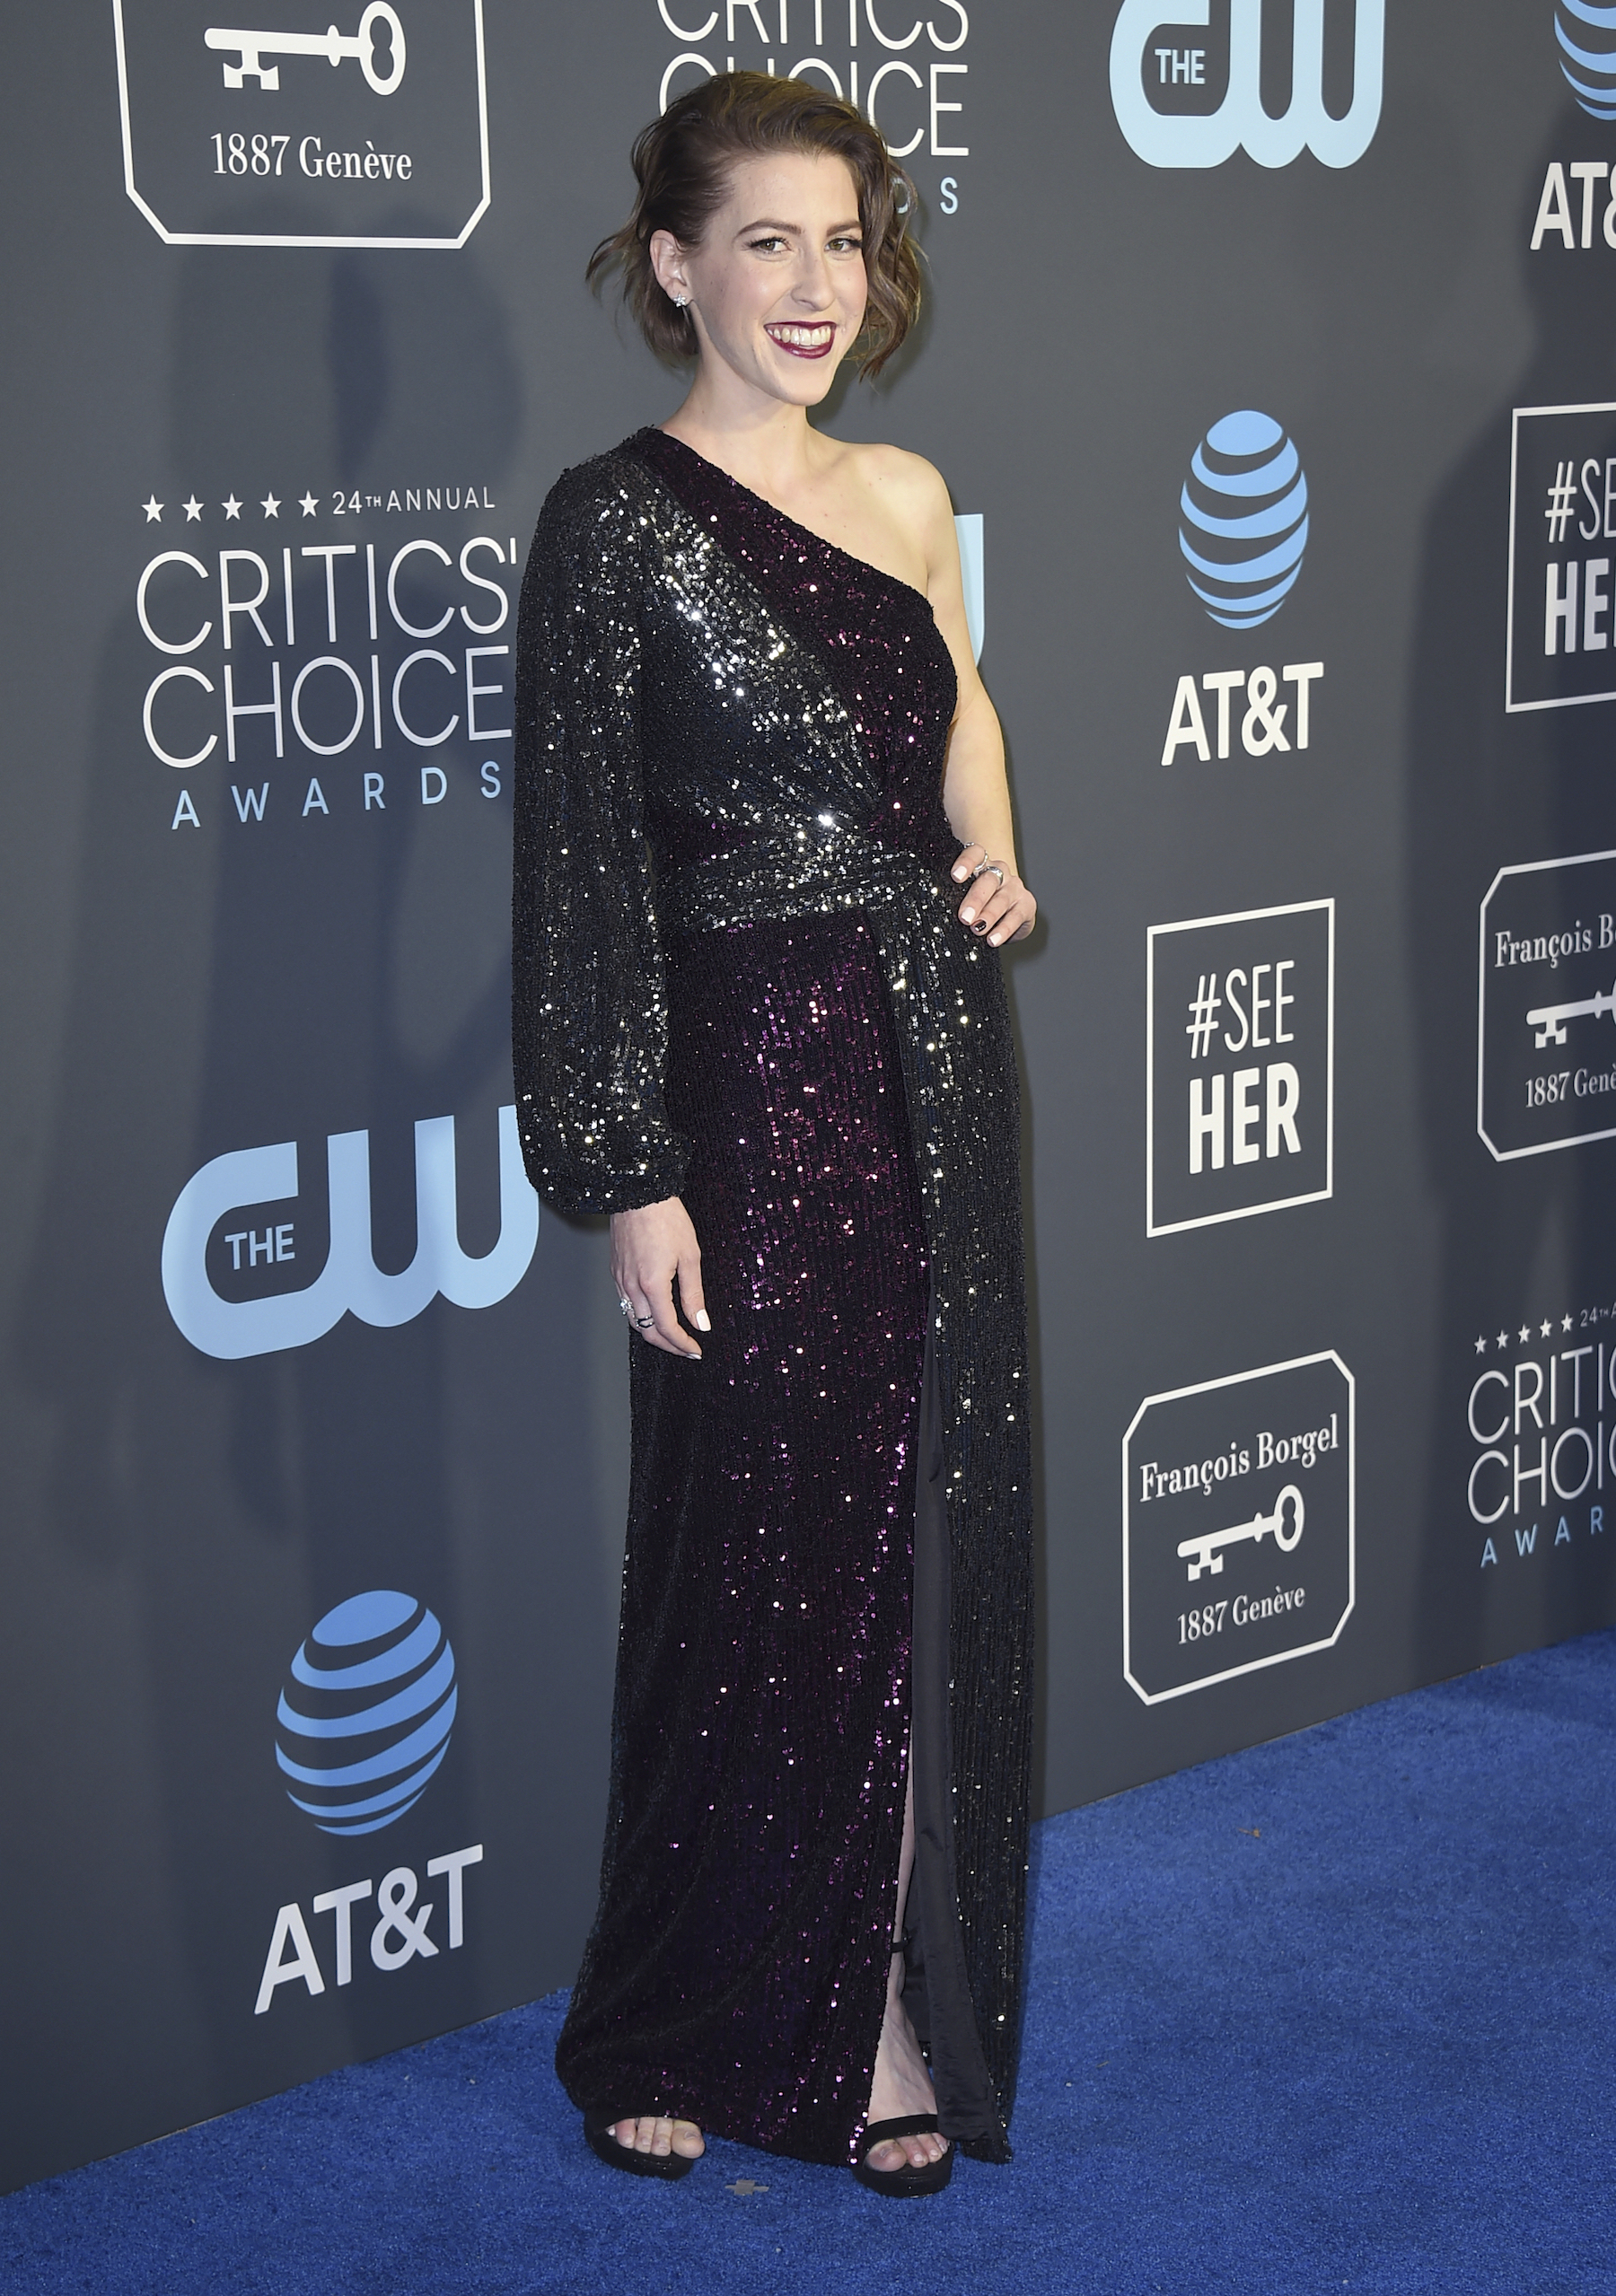 "<div class=""meta image-caption""><div class=""origin-logo origin-image ap""><span>AP</span></div><span class=""caption-text"">Eden Sher arrives at the 24th annual Critics' Choice Awards on Sunday, Jan. 13, 2019, at the Barker Hangar in Santa Monica, Calif. (Jordan Strauss/Invision/AP)</span></div>"